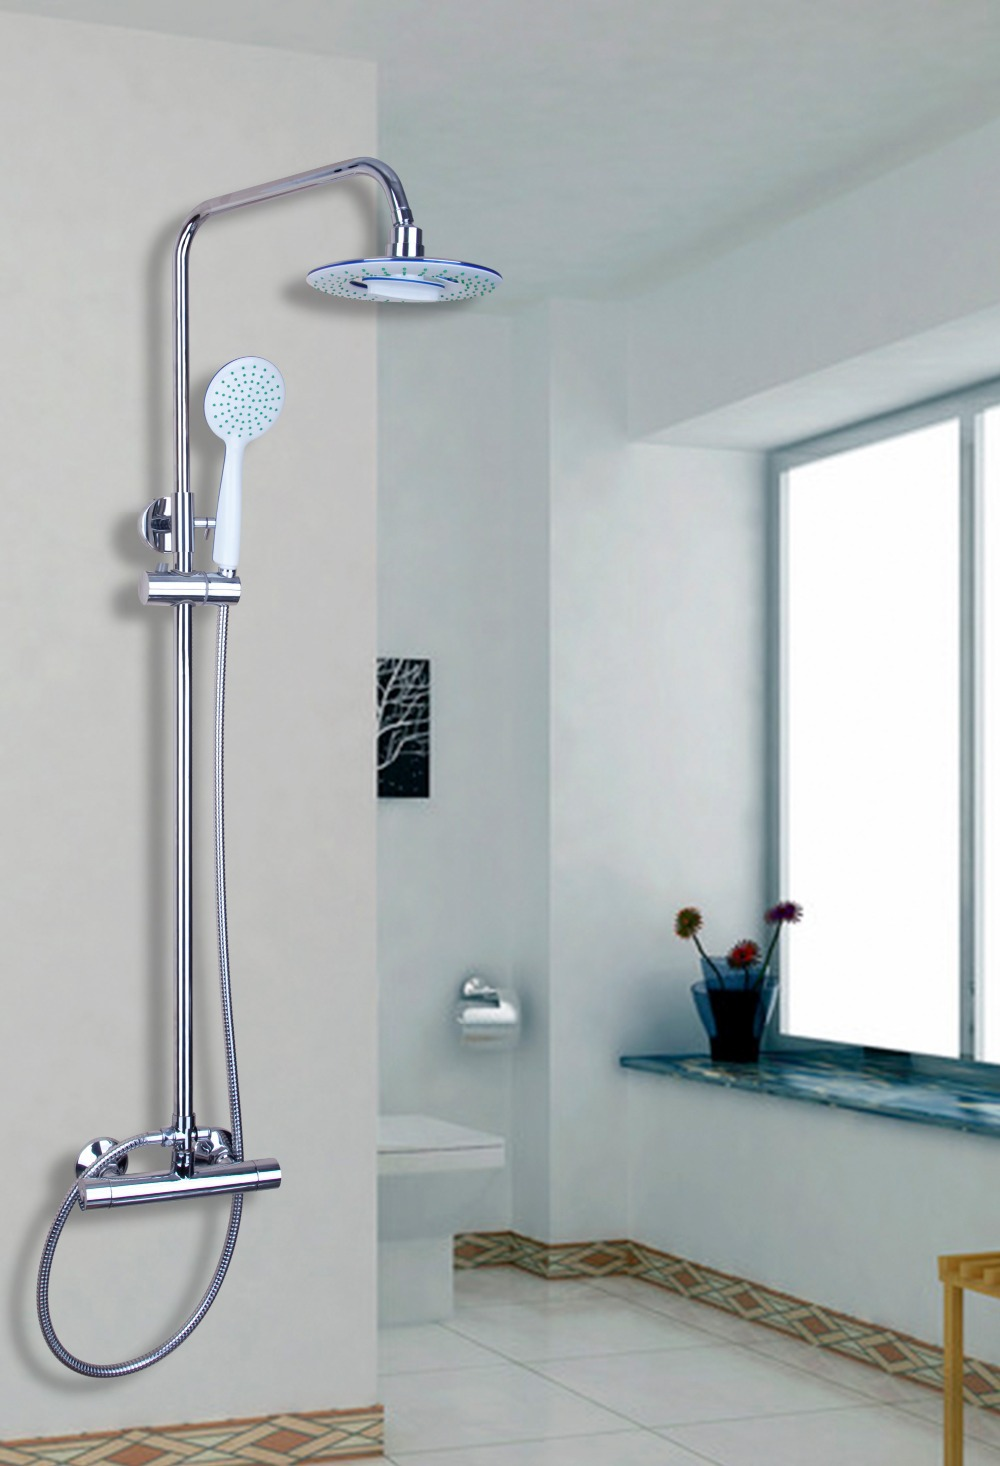 popular complete shower setbuy cheap complete shower set lots, Home design